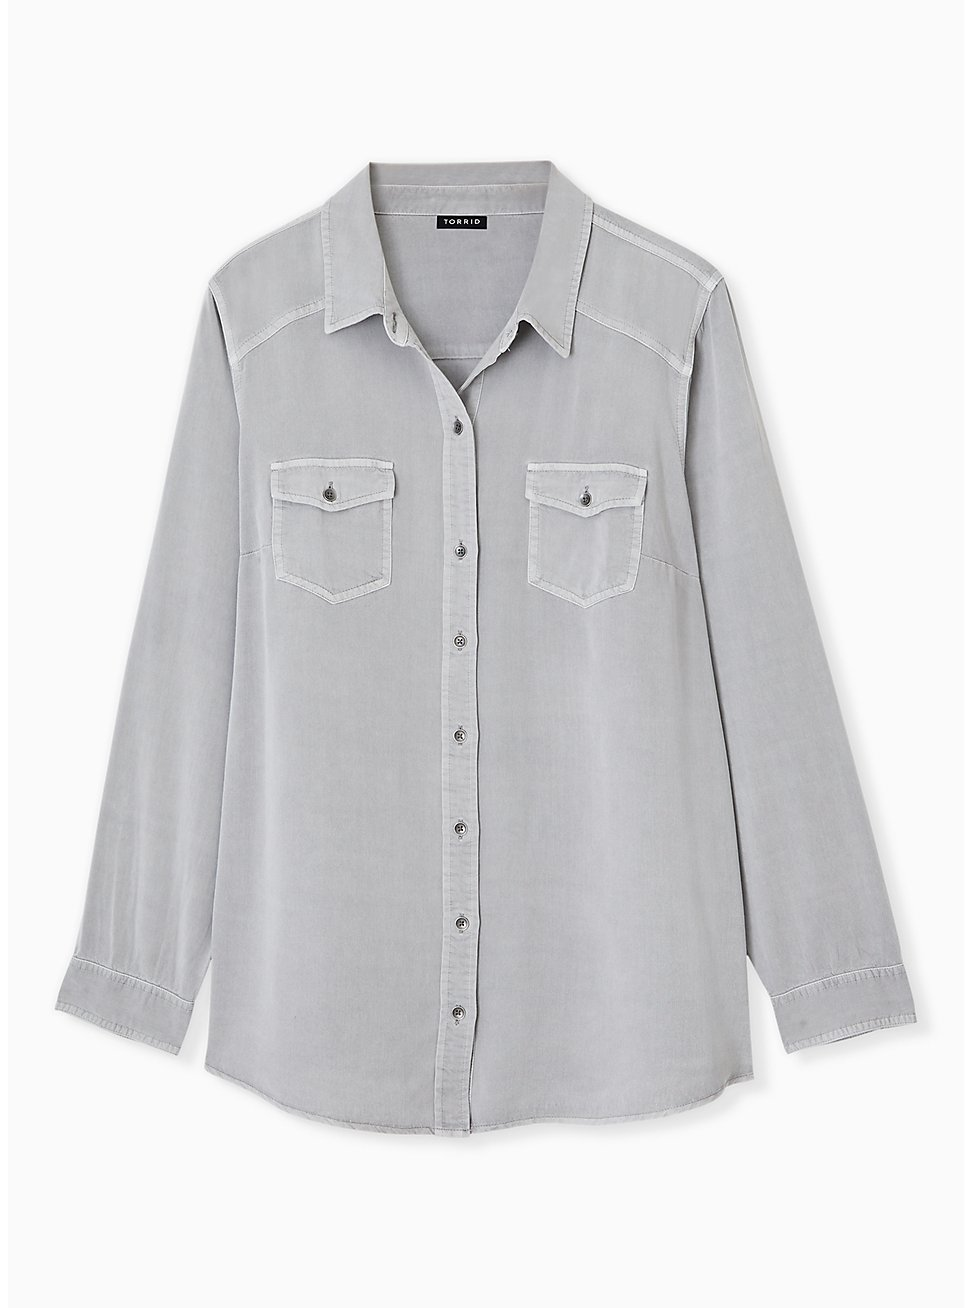 Taylor - Grey Acid Wash Twill Button Front Classic Fit Shirt , FROST GRAY, hi-res